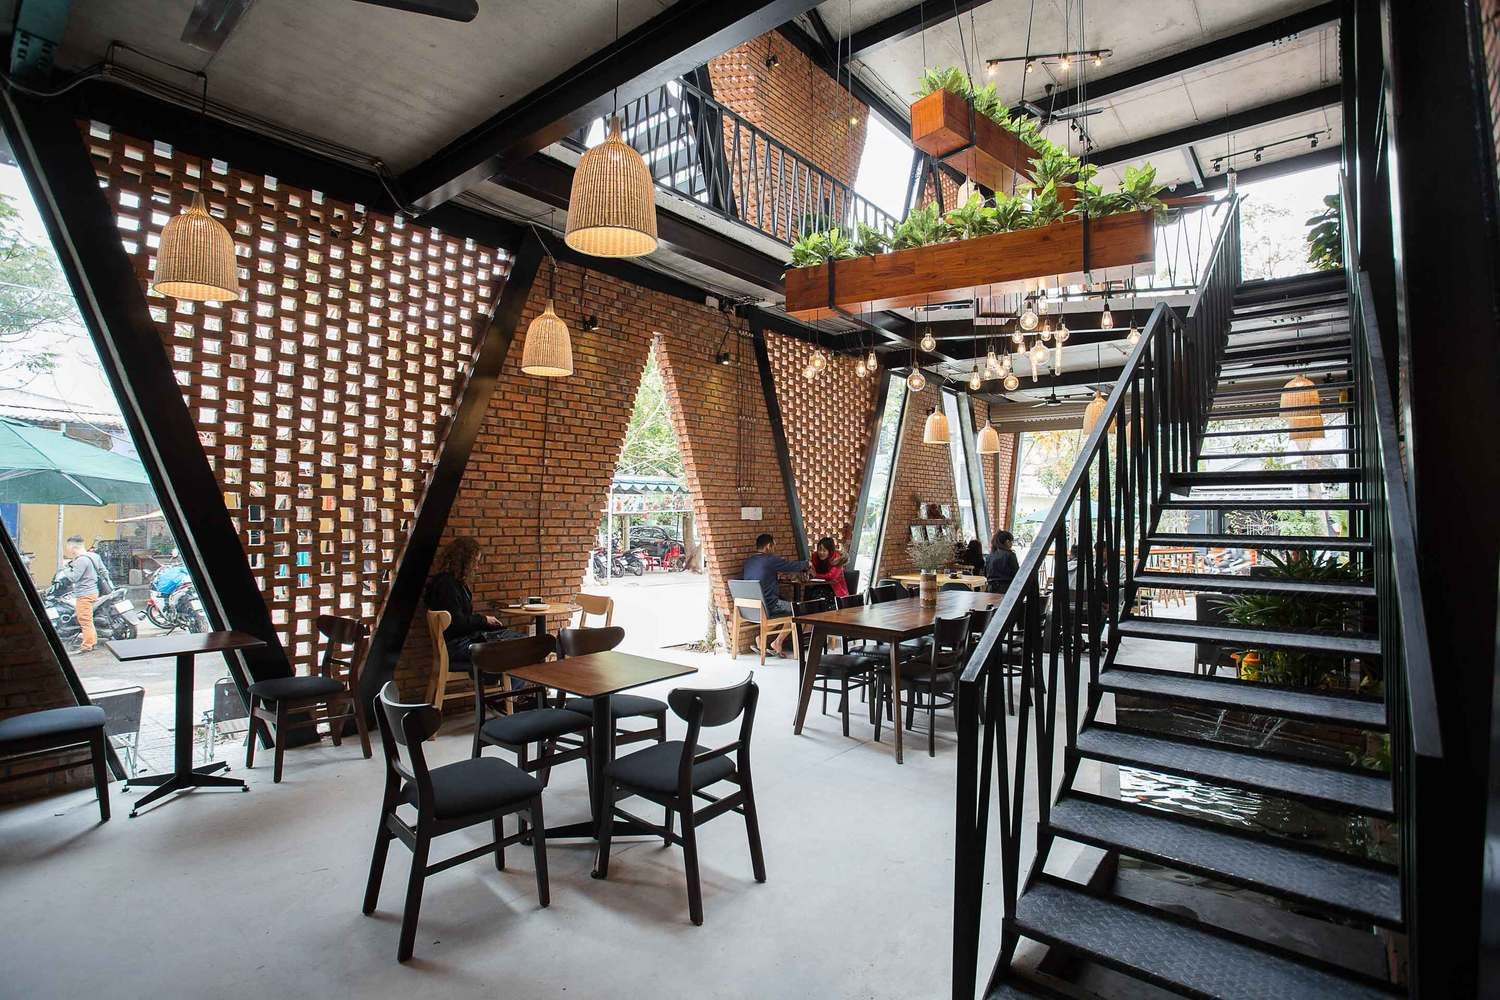 Gallery Of Mưa Coffee Shop 85 Design 28 Con Imagenes